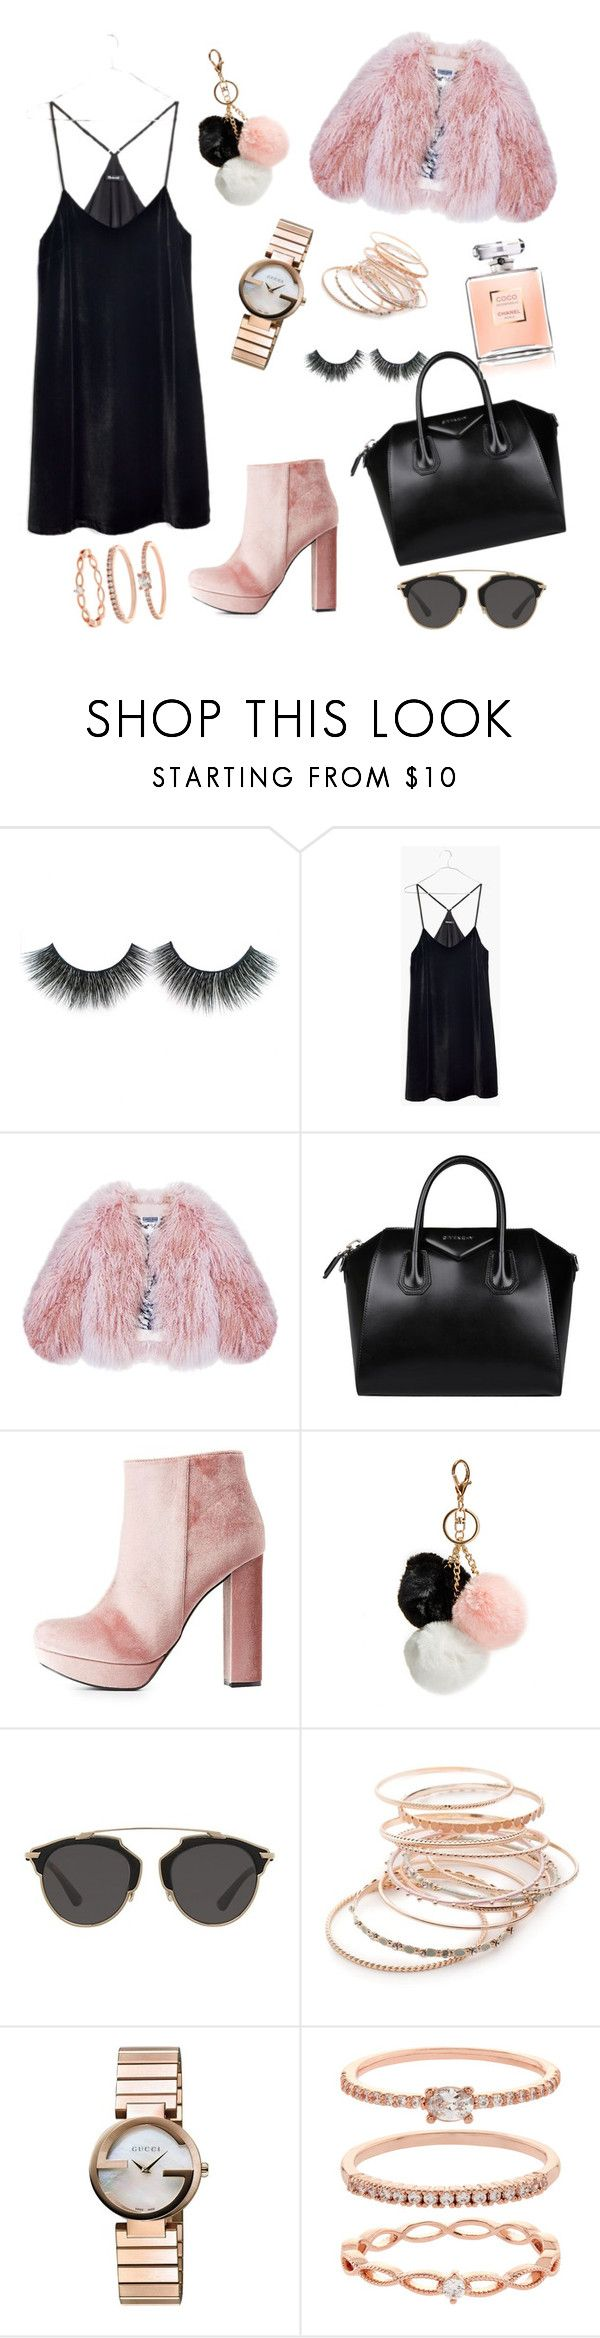 """""""Untitled #201"""" by electraz on Polyvore featuring Madewell, Florence Bridge, Givenchy, Charlotte Russe, GUESS, Christian Dior, Red Camel, Gucci and Accessorize"""